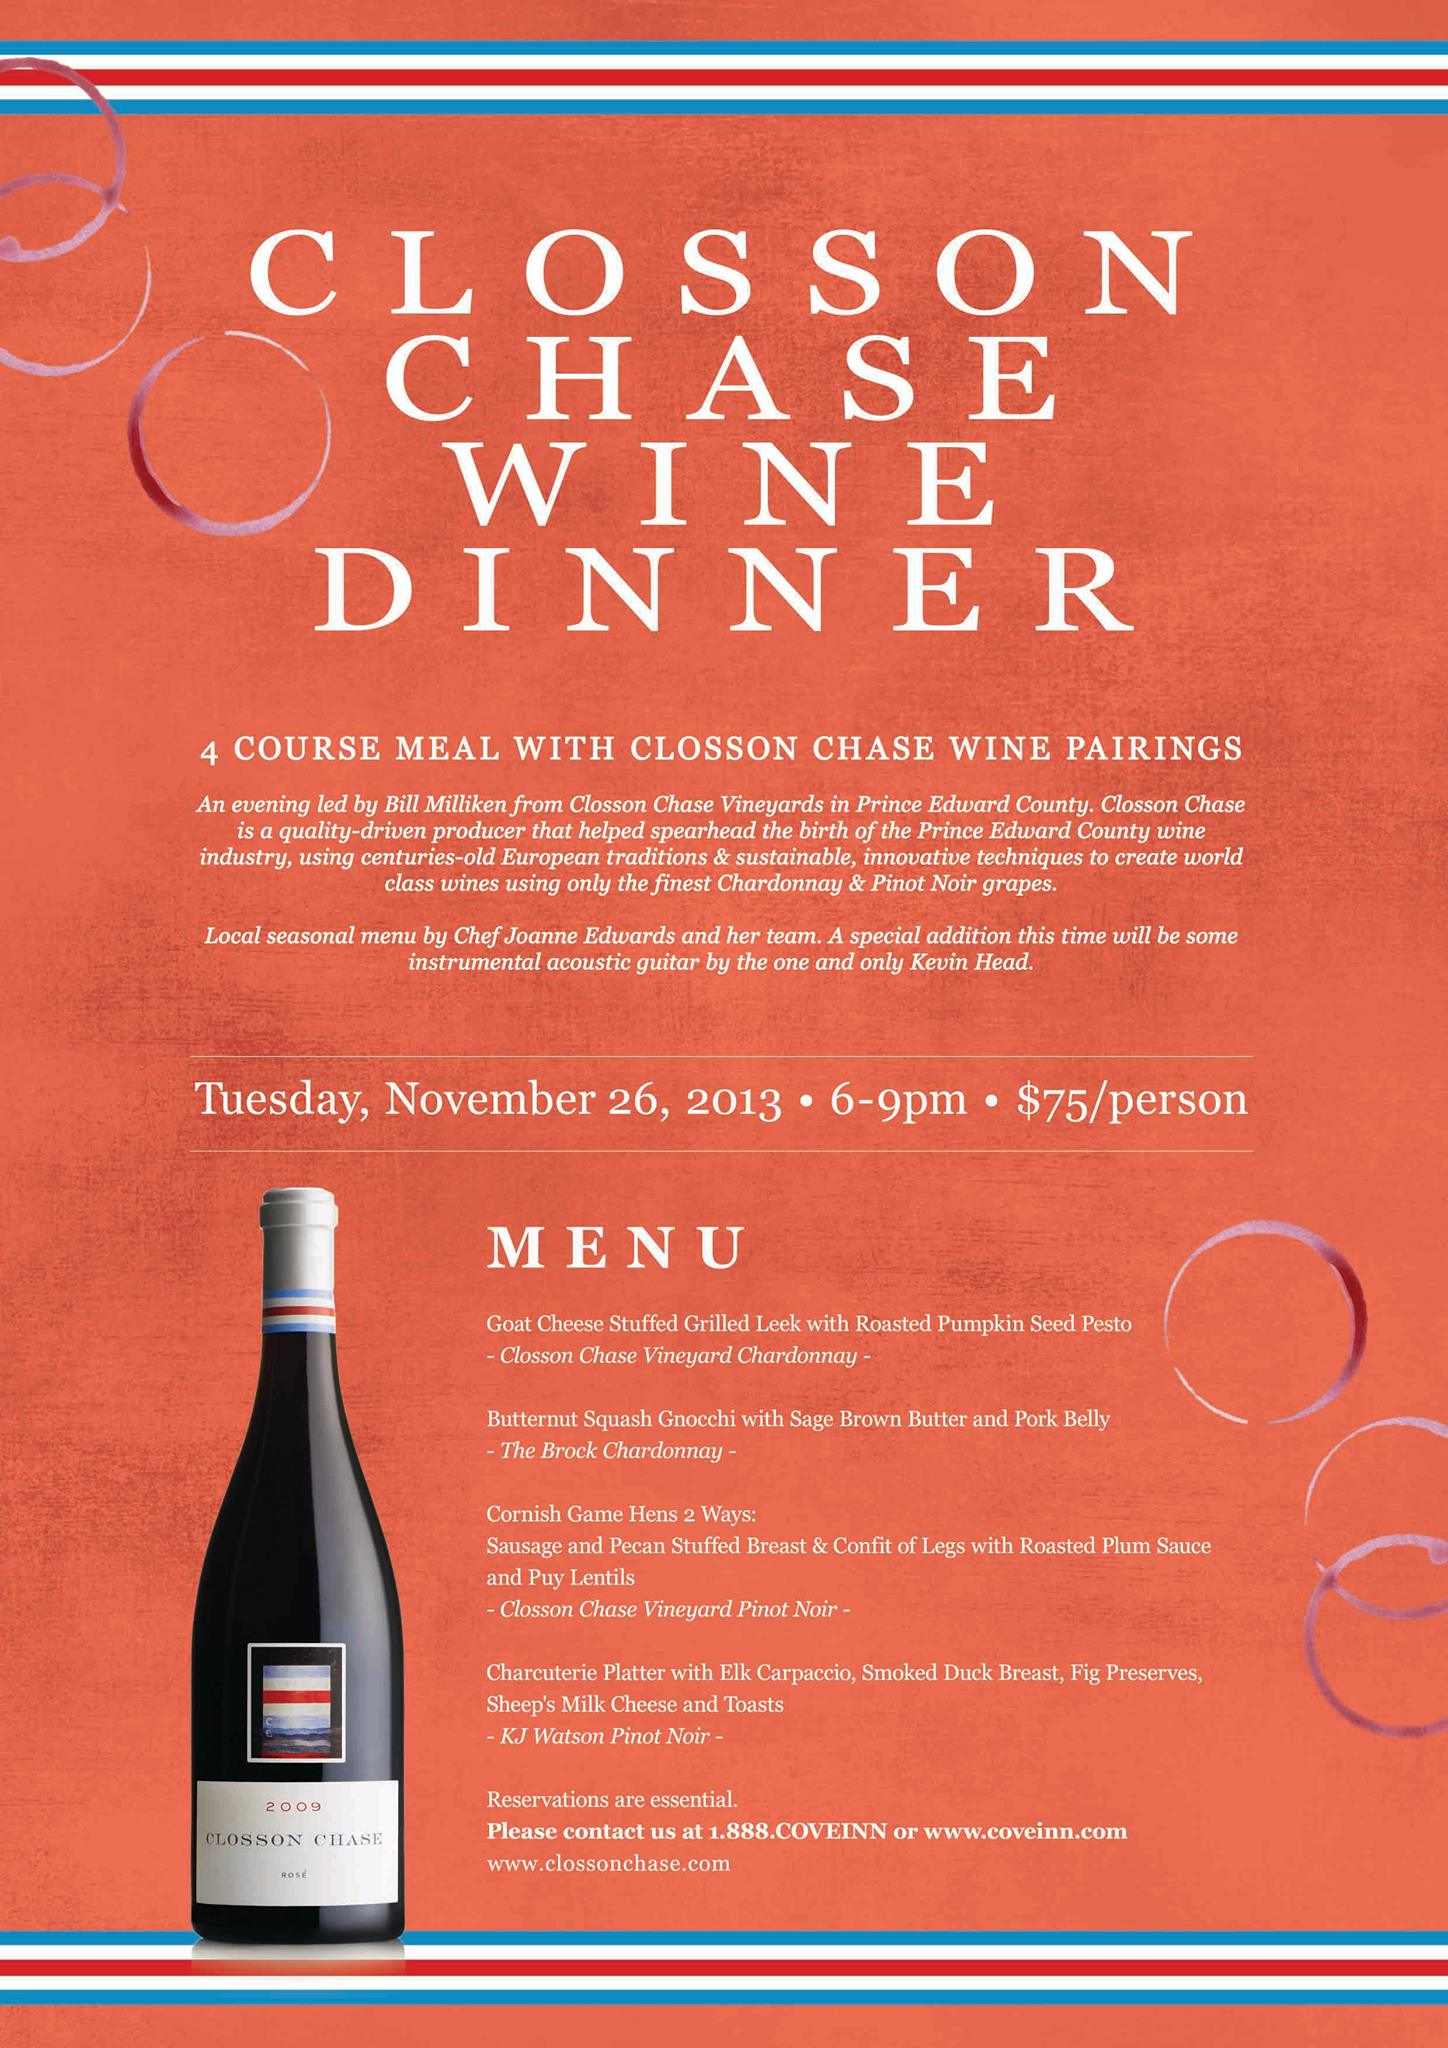 Closson Chase Wine Dinner